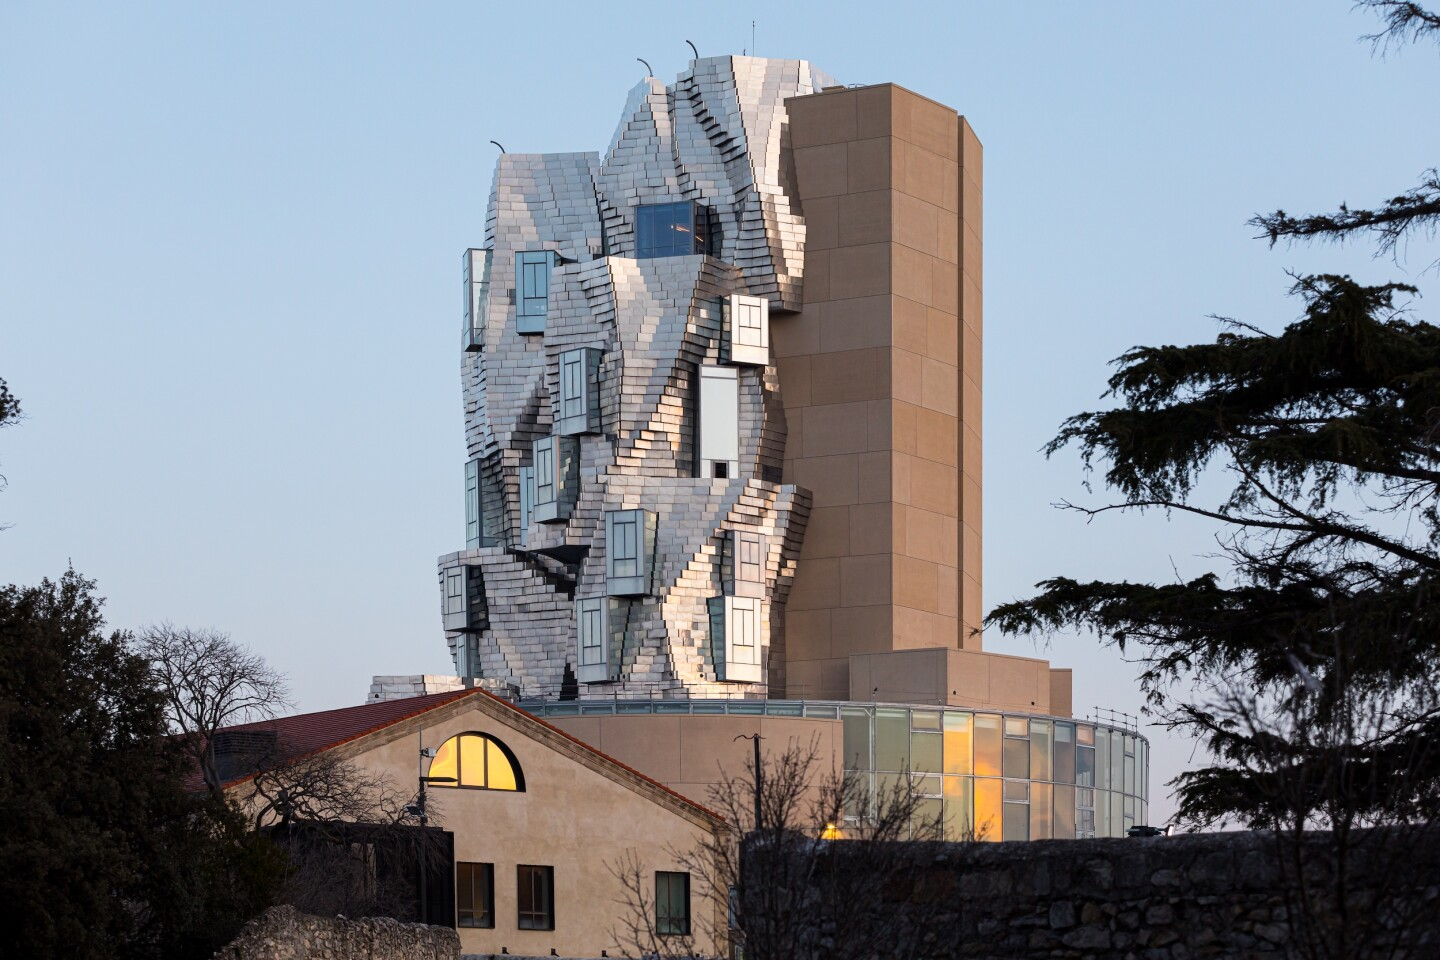 The Luma Arles tower rises to a height of 56 m (183 ft)